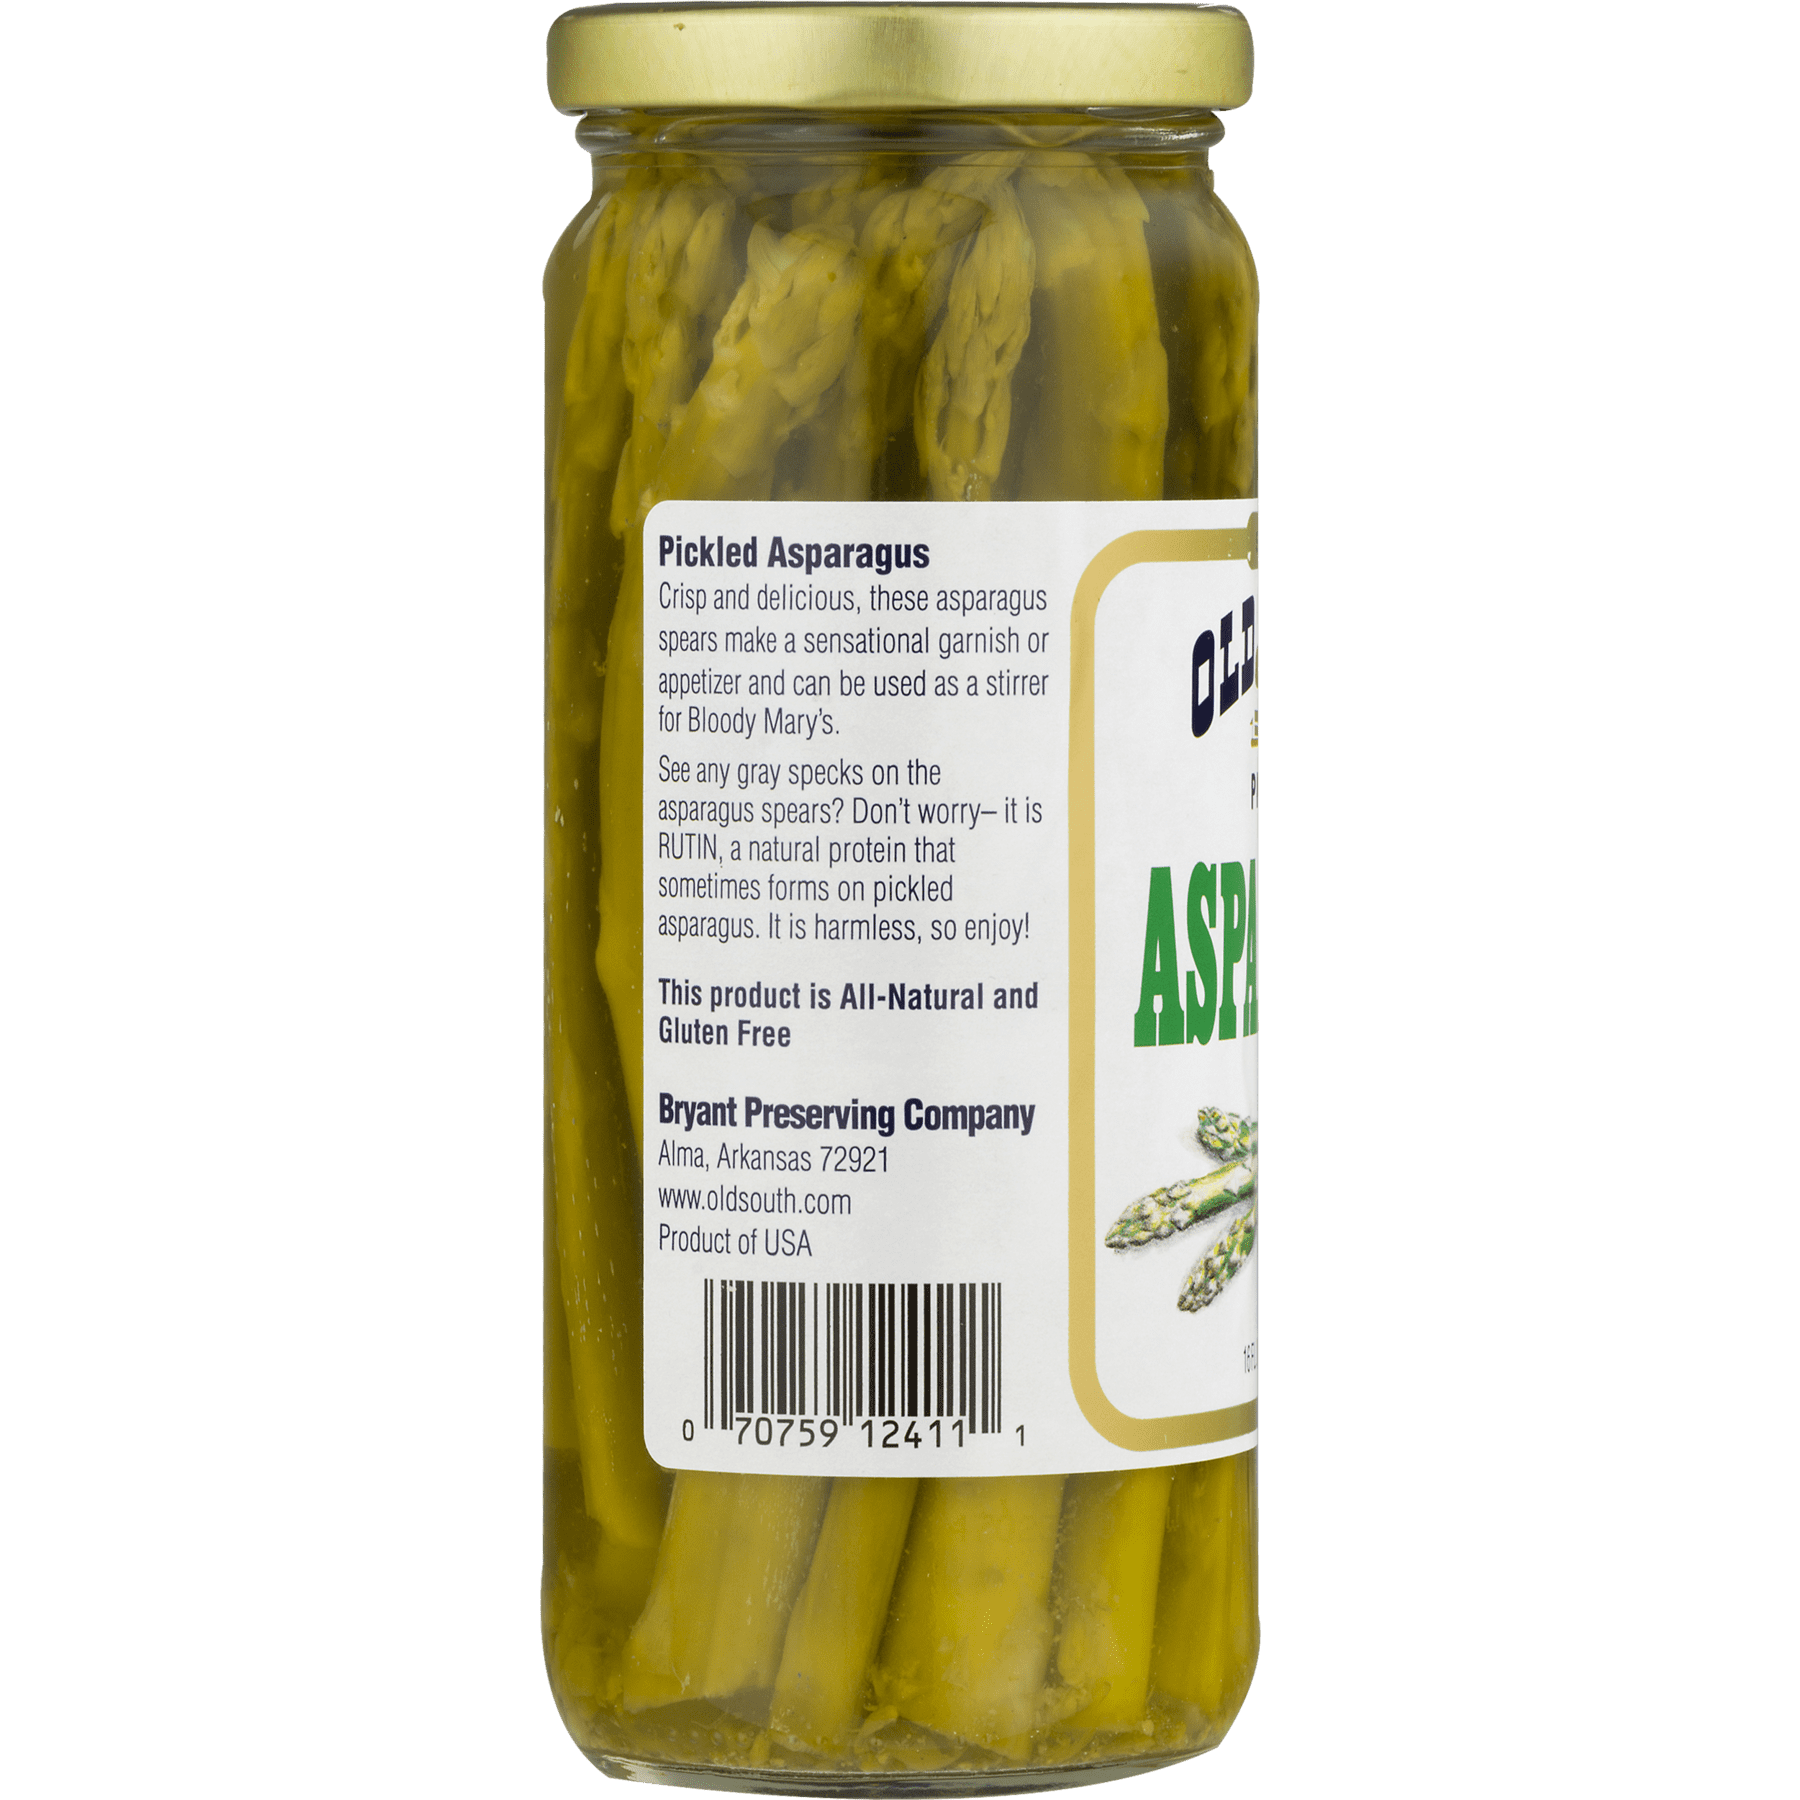 Old South Pickled Asparagus, 16 fl oz - Walmart.com